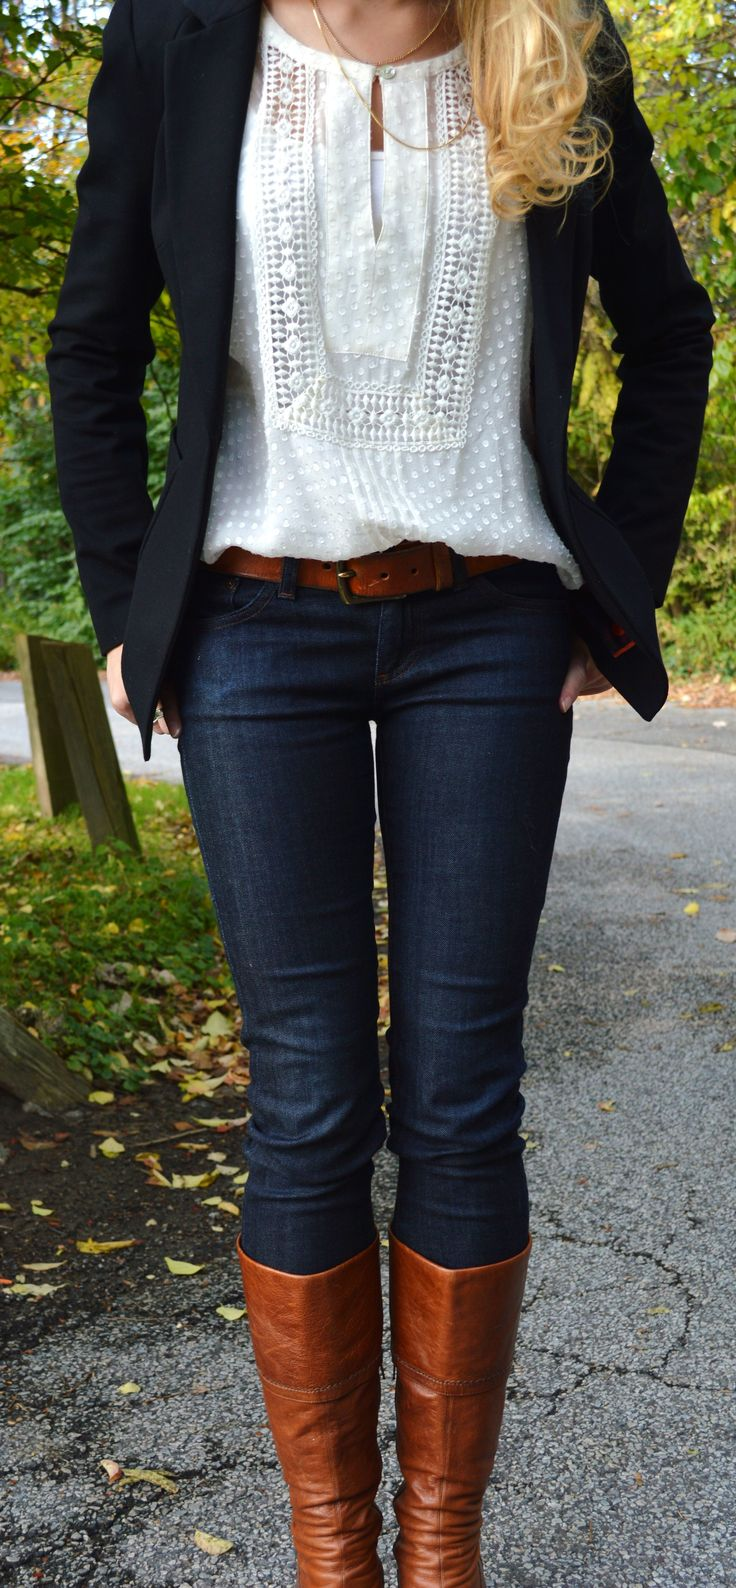 I have been wearing this outfit for years.  It will never go out of style. Jeans, boots, white shirt and navy blazer.